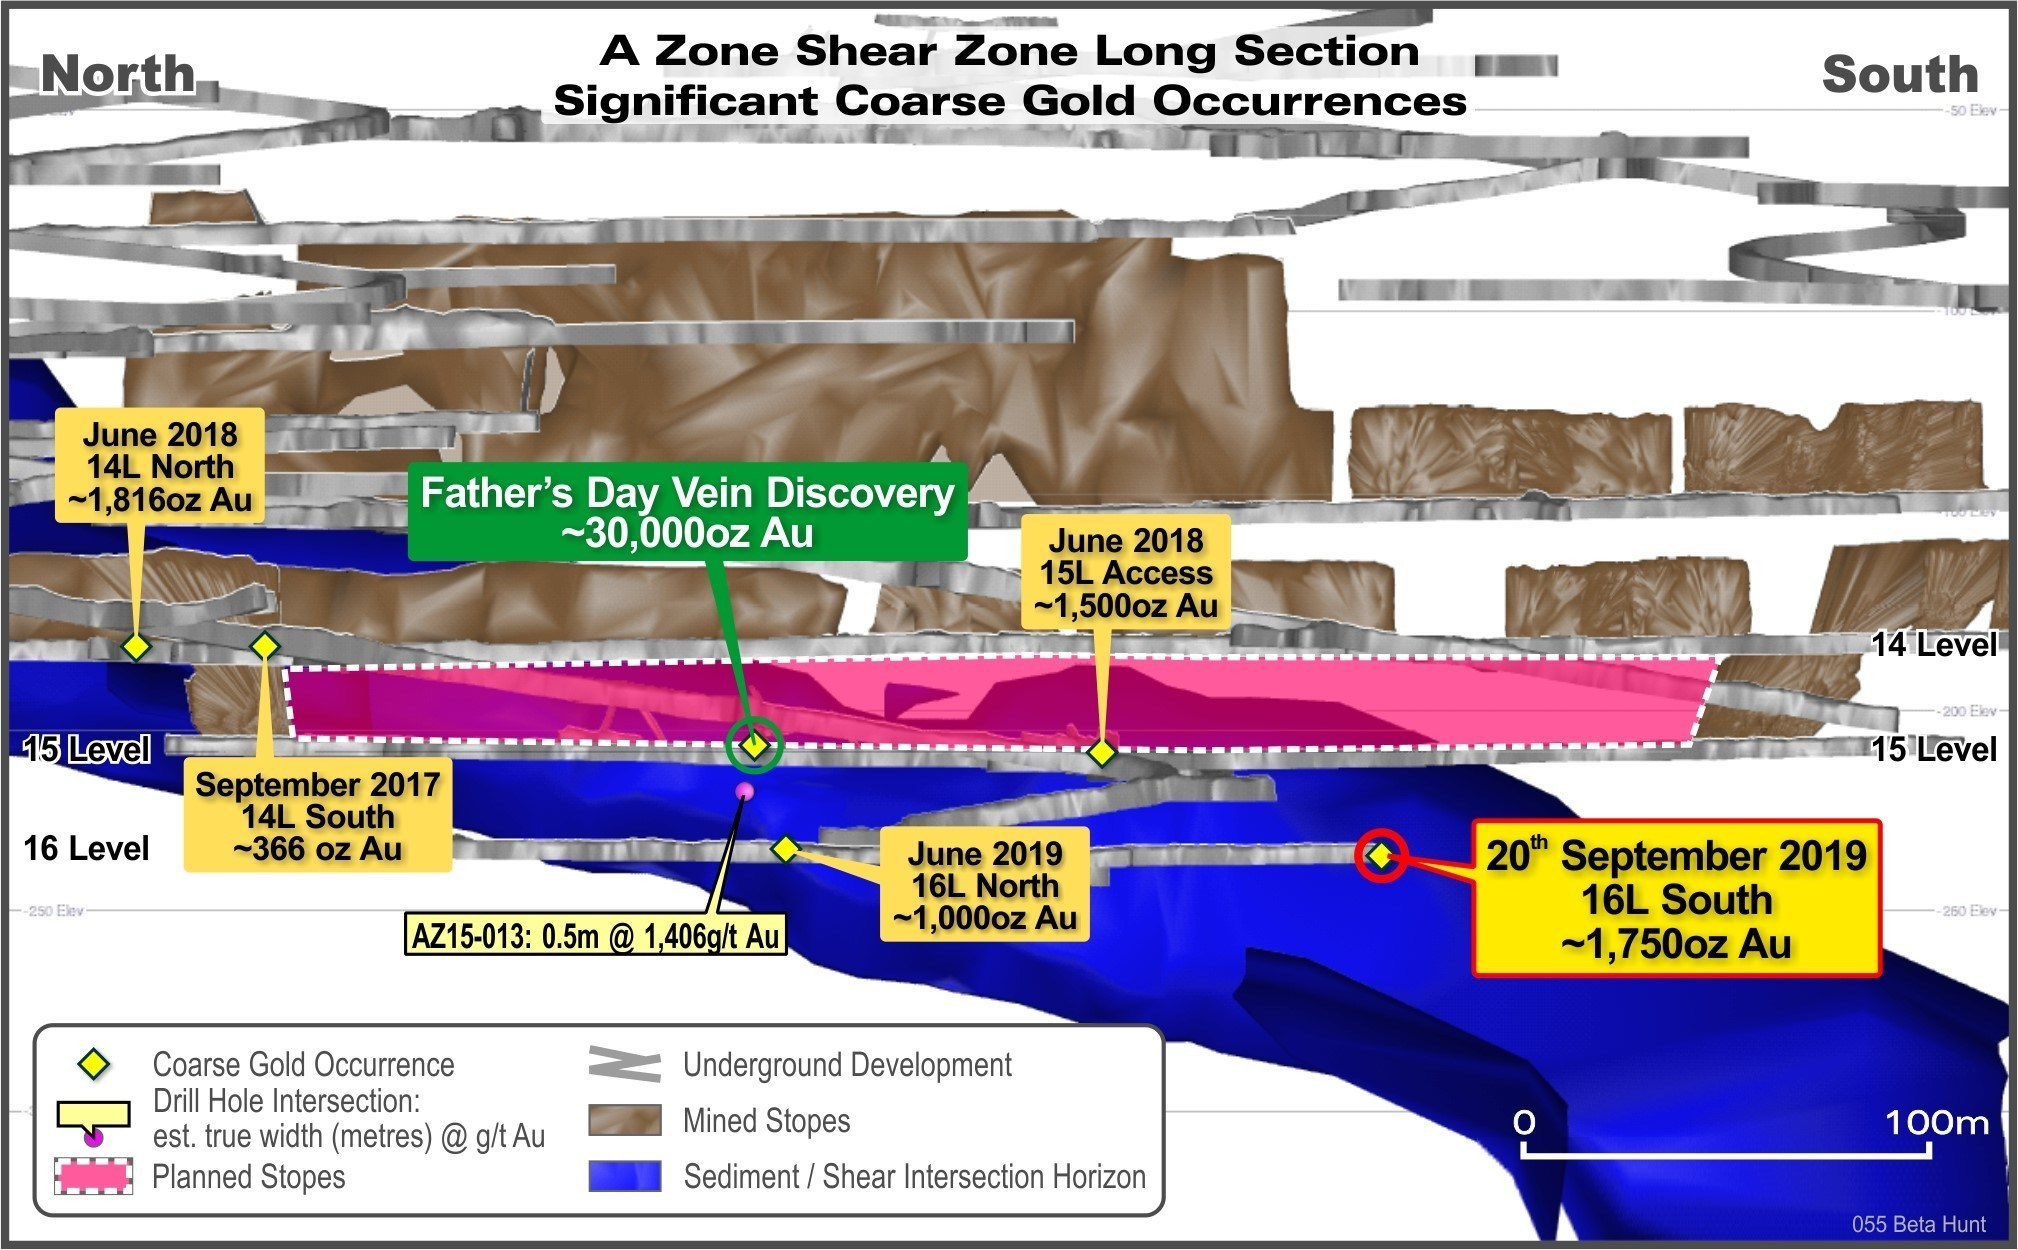 Figure 2: A Zone Long Section Looking East showing locations of coarse gold occurrences (CNW Group/RNC Minerals)